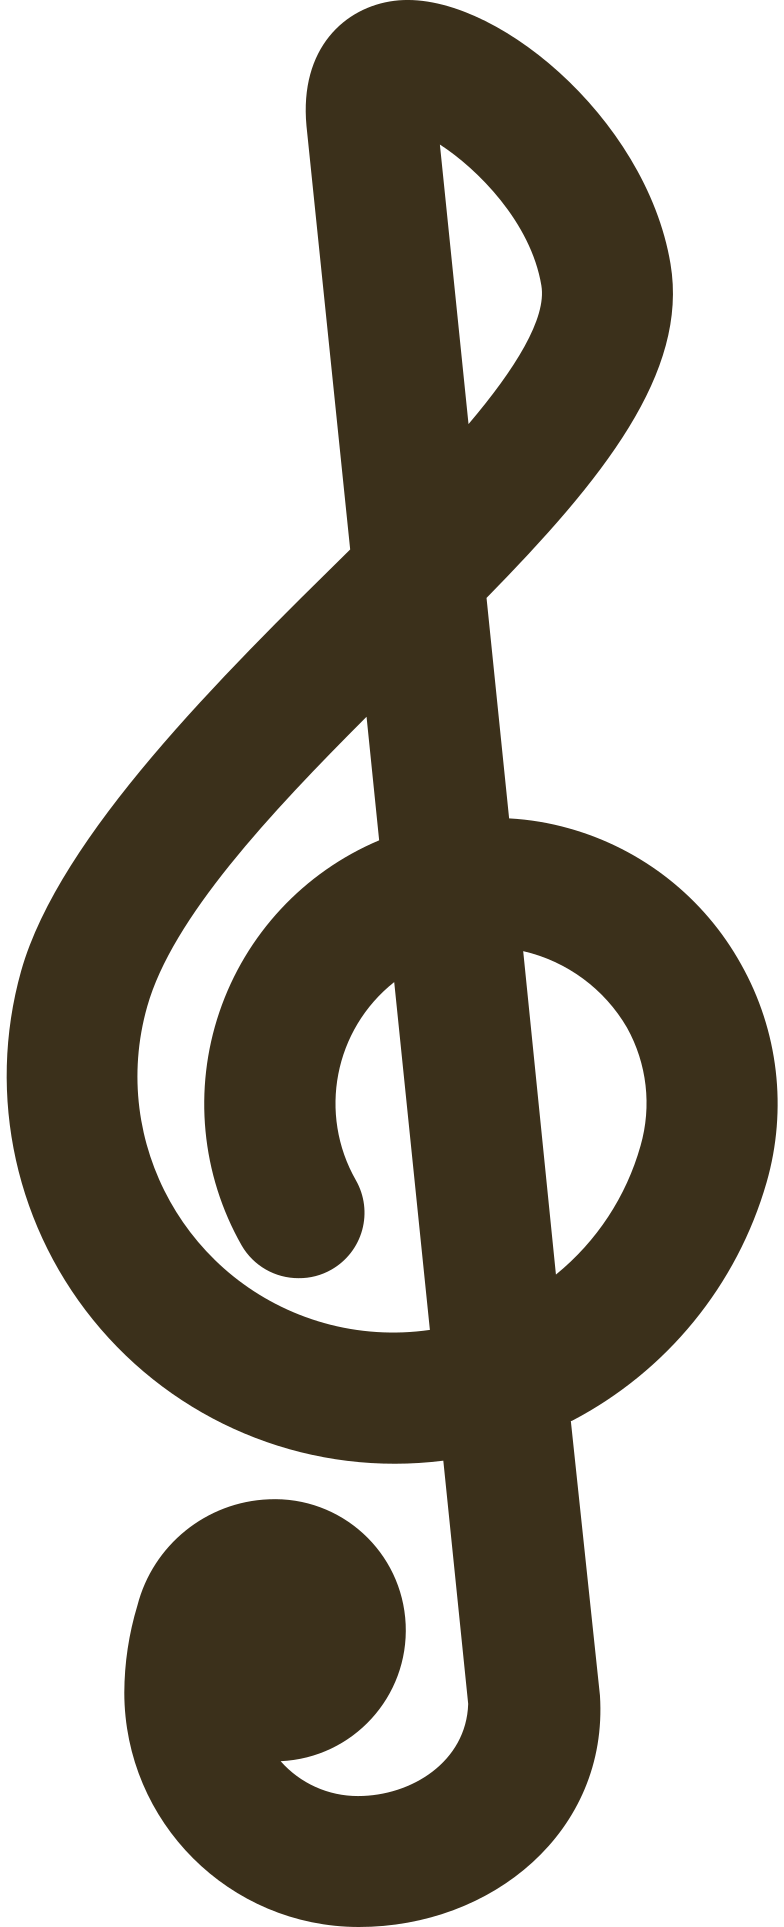 music note clef Clipart illustration in PNG, SVG